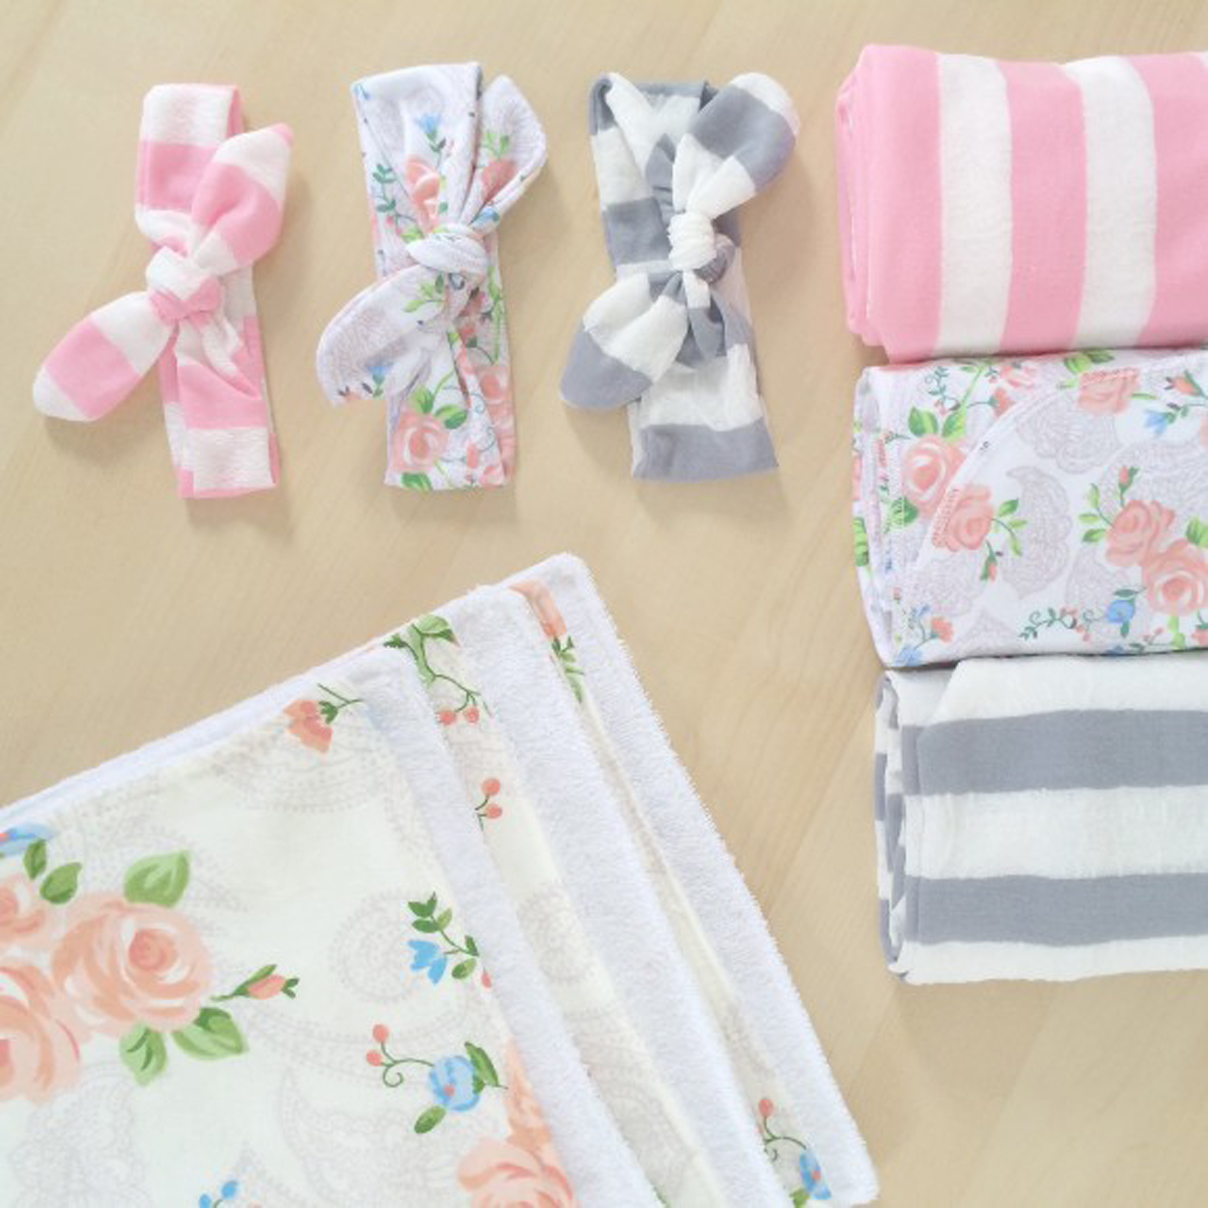 Unique Homemade Baby Gift Ideas : Handmade baby gift idea roundup